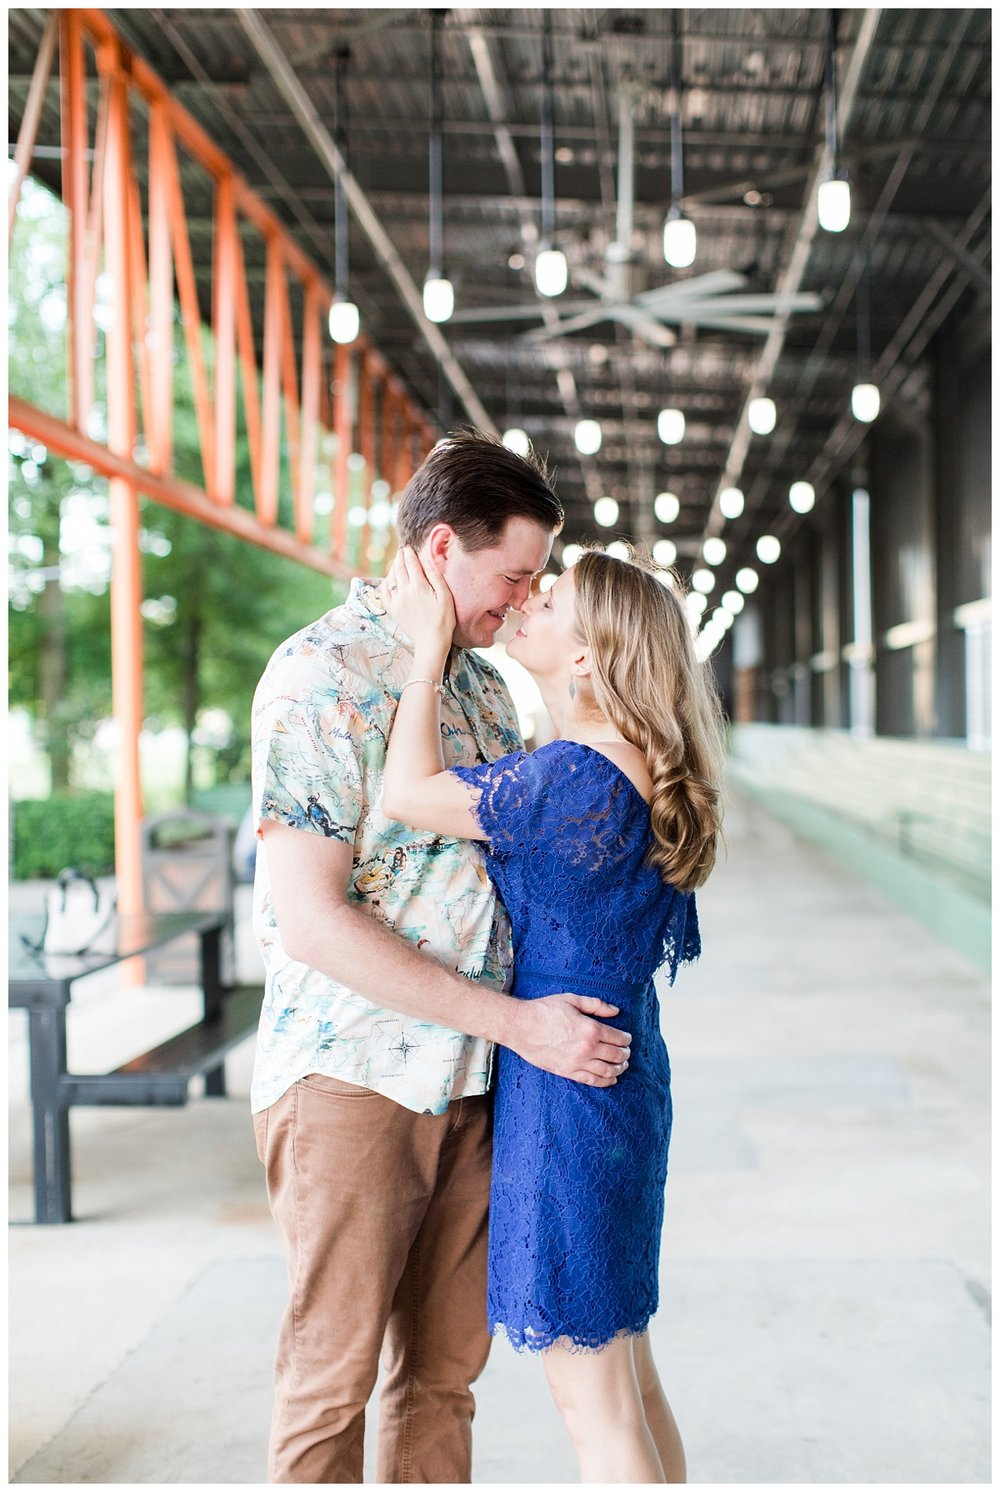 Engagement Pictures_KIm and Hamish_Abby Breaux Photography_Atlanta_Ponce City Market_Jackson Street Bridge_0053.jpg